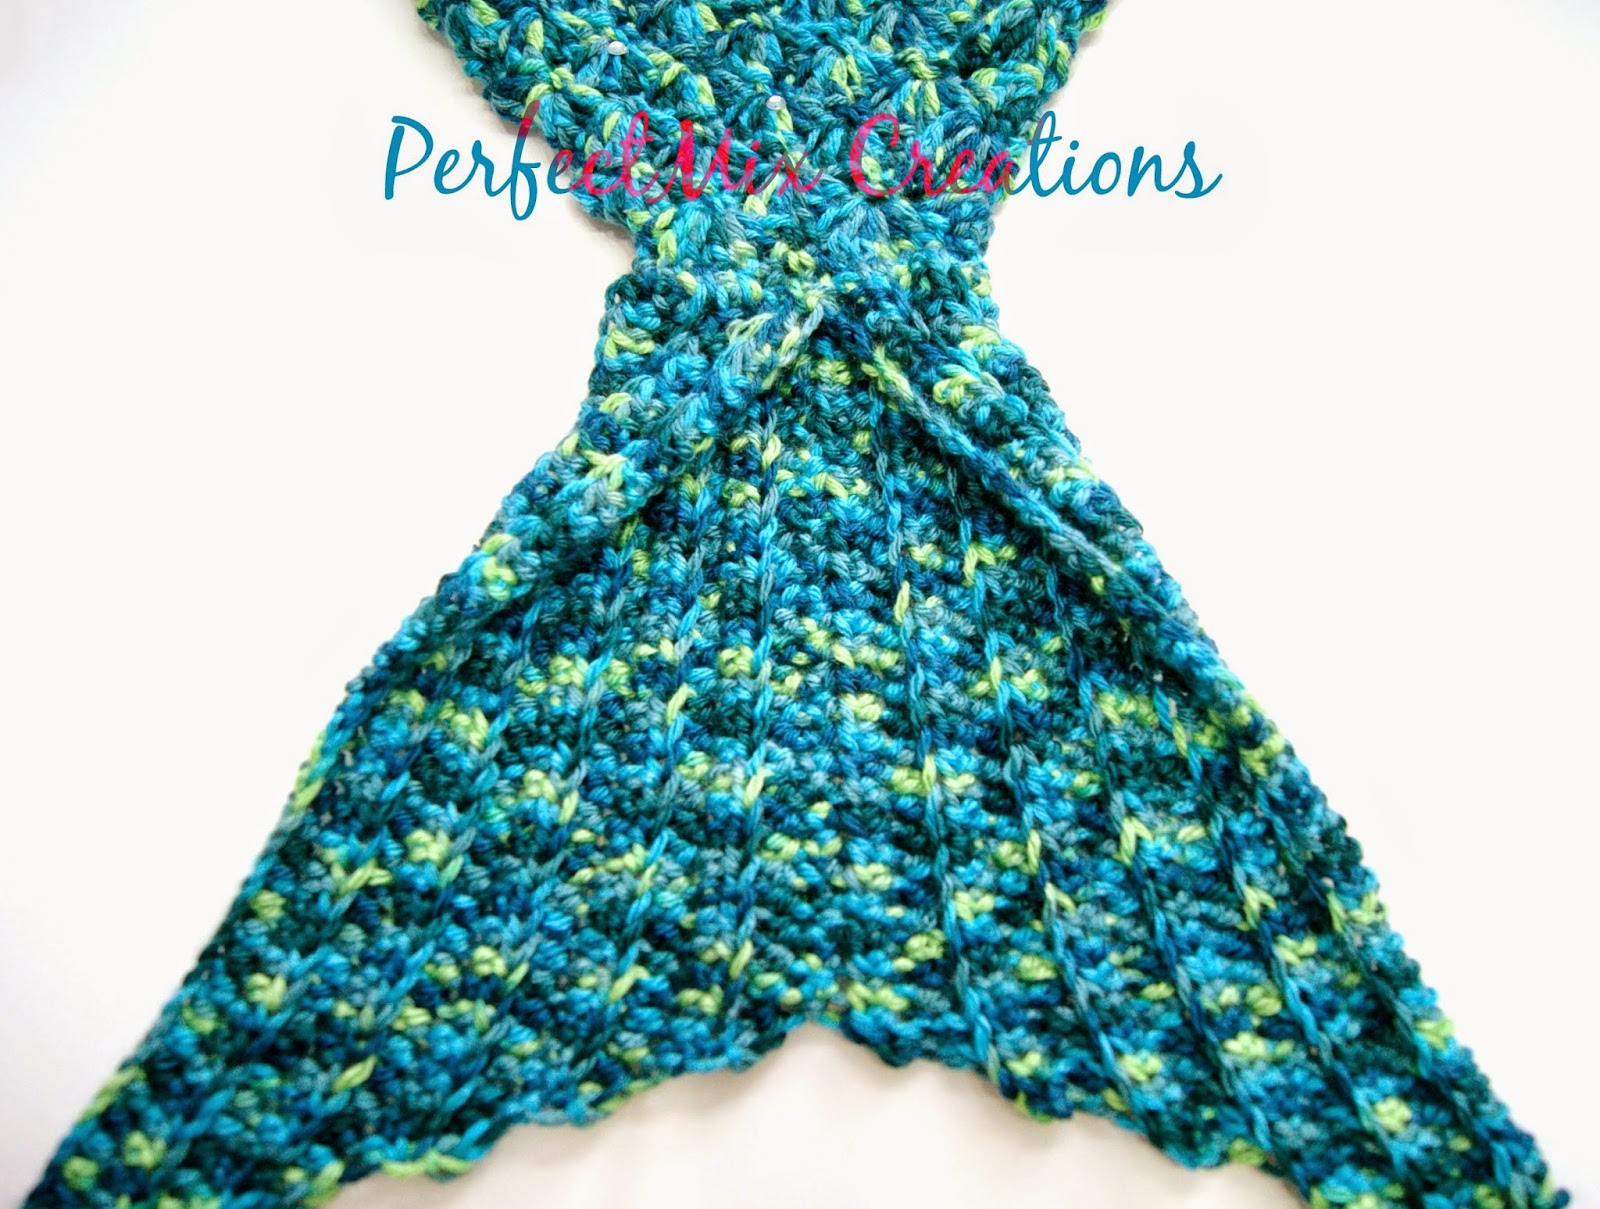 Free Crochet Pattern Mermaid Tail Blanket : Mixin it up with DaPerfectMix: Crochet Mermaid Tail Fin ...